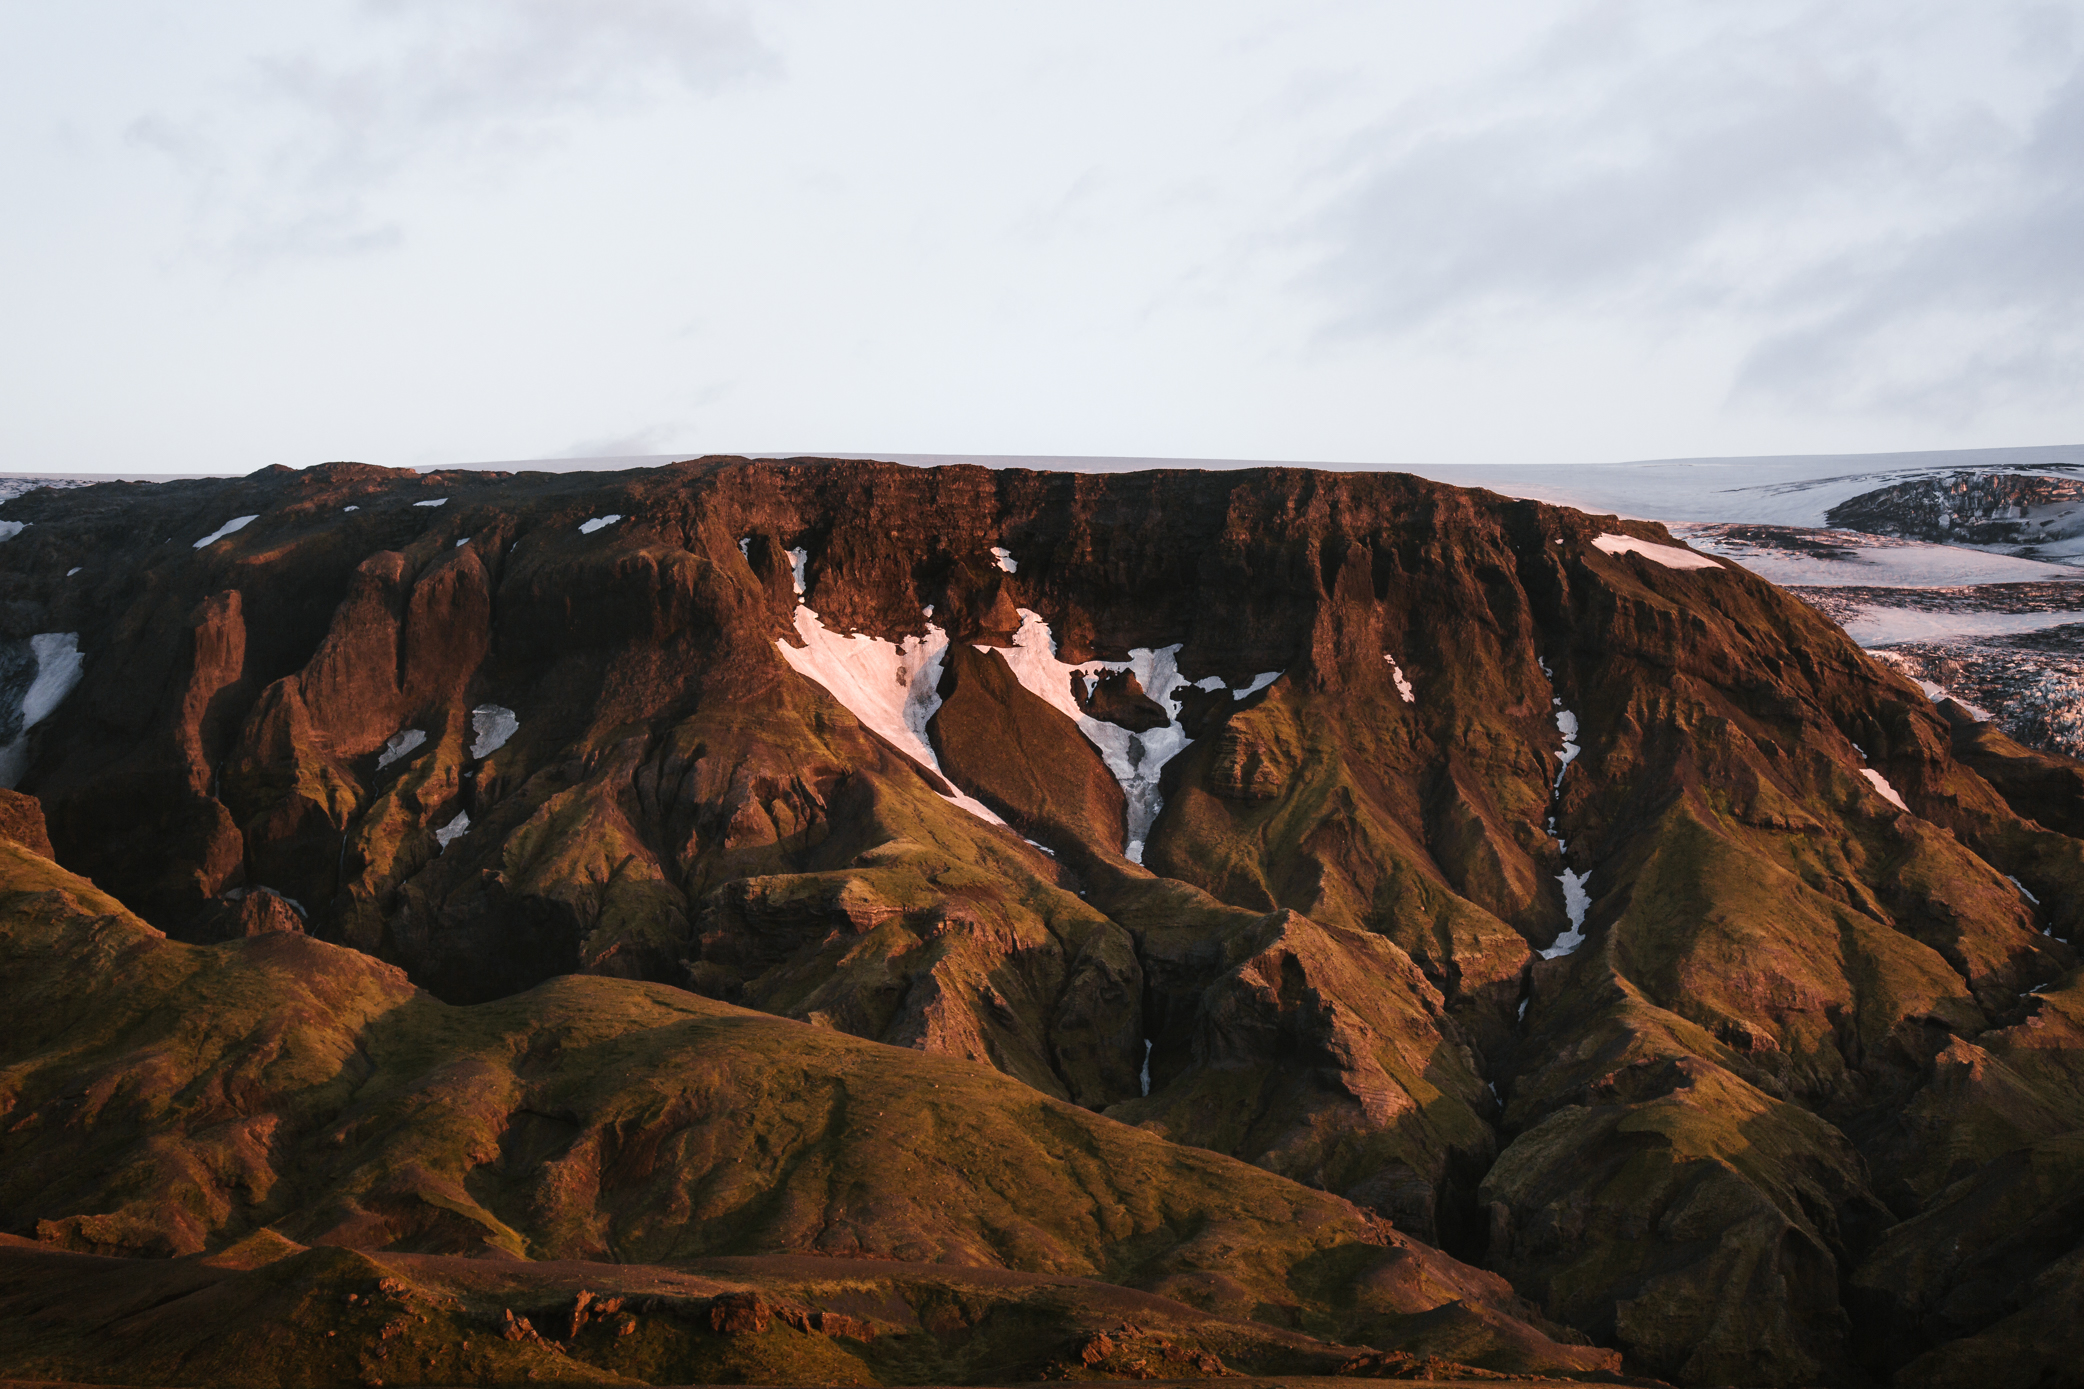 Explore the Golden Thórsmörk, Iceland with Marina Weishaupt